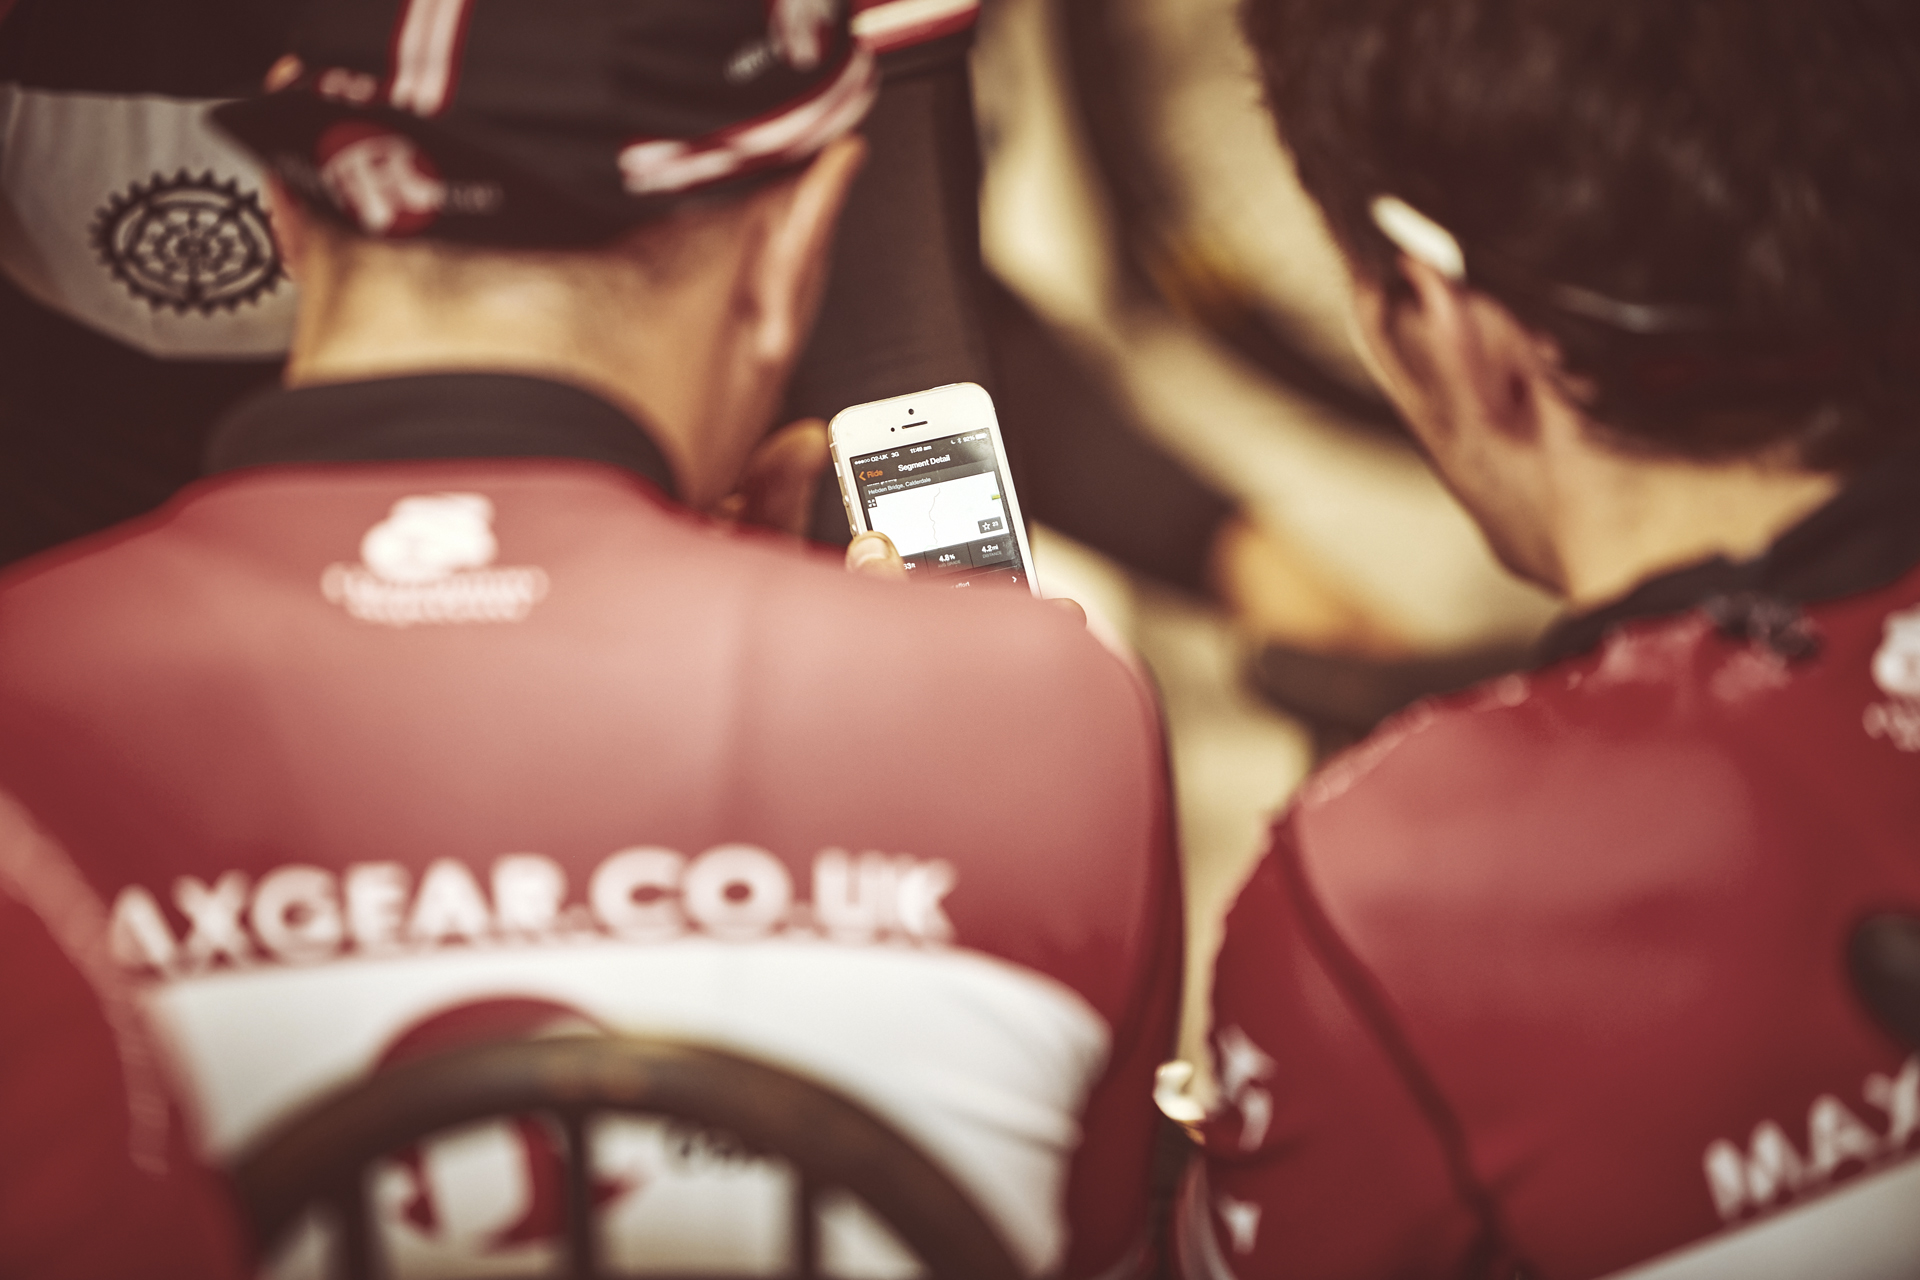 Cyclists looking at Strava on a mobile phone